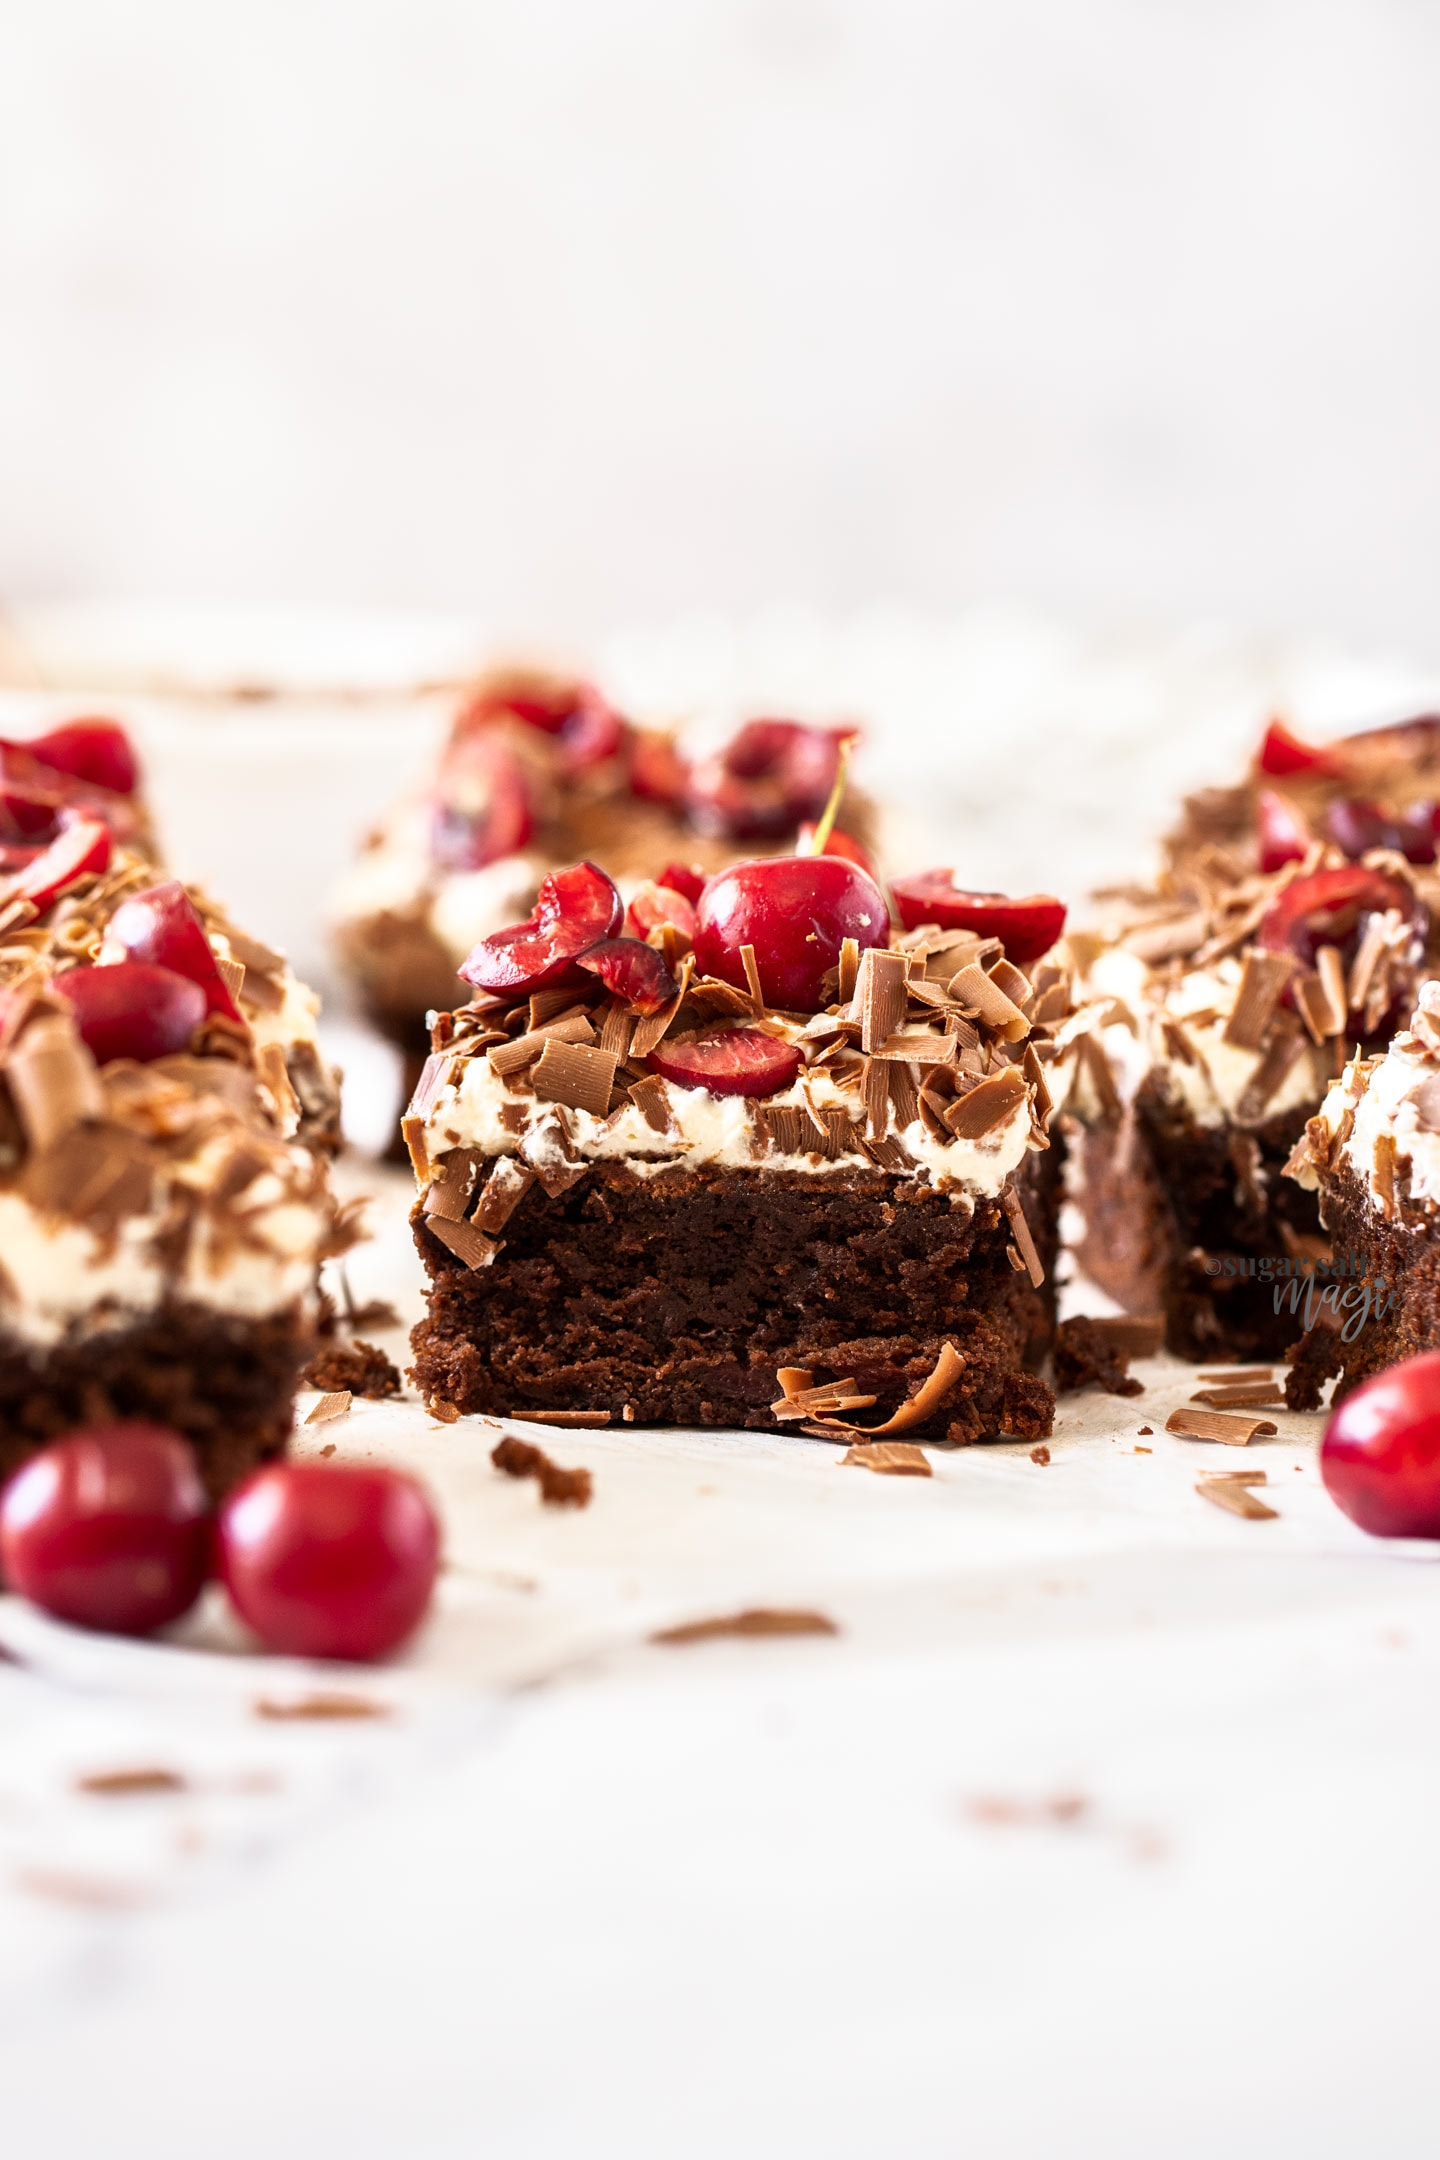 Closeup of a brownie topped with cream and cherries on a white surface